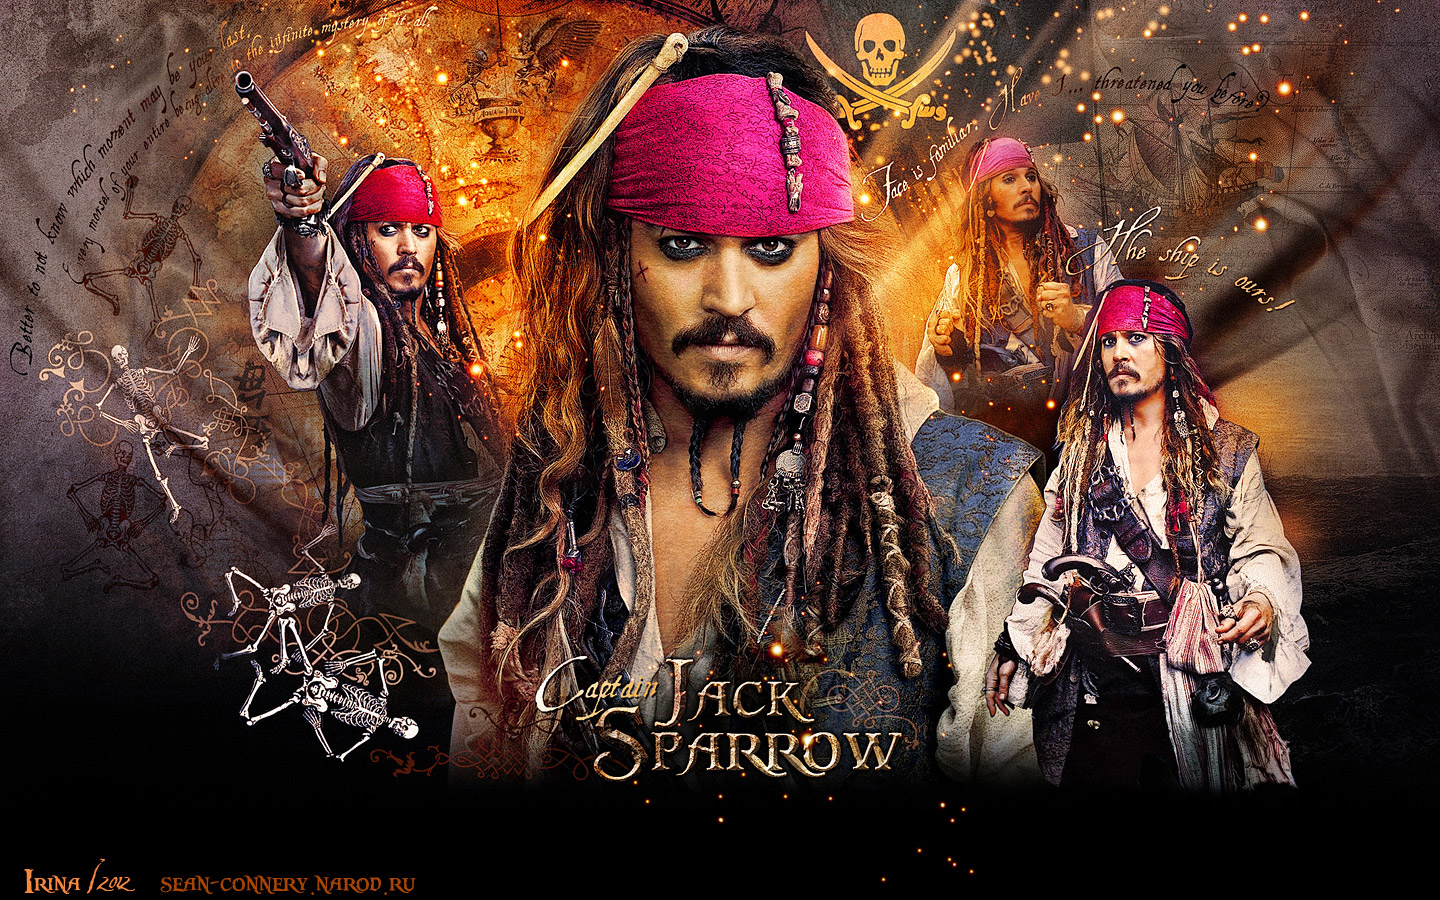 Potc Wallpapers Pirates Of The Caribbean Wallpaper 32851122